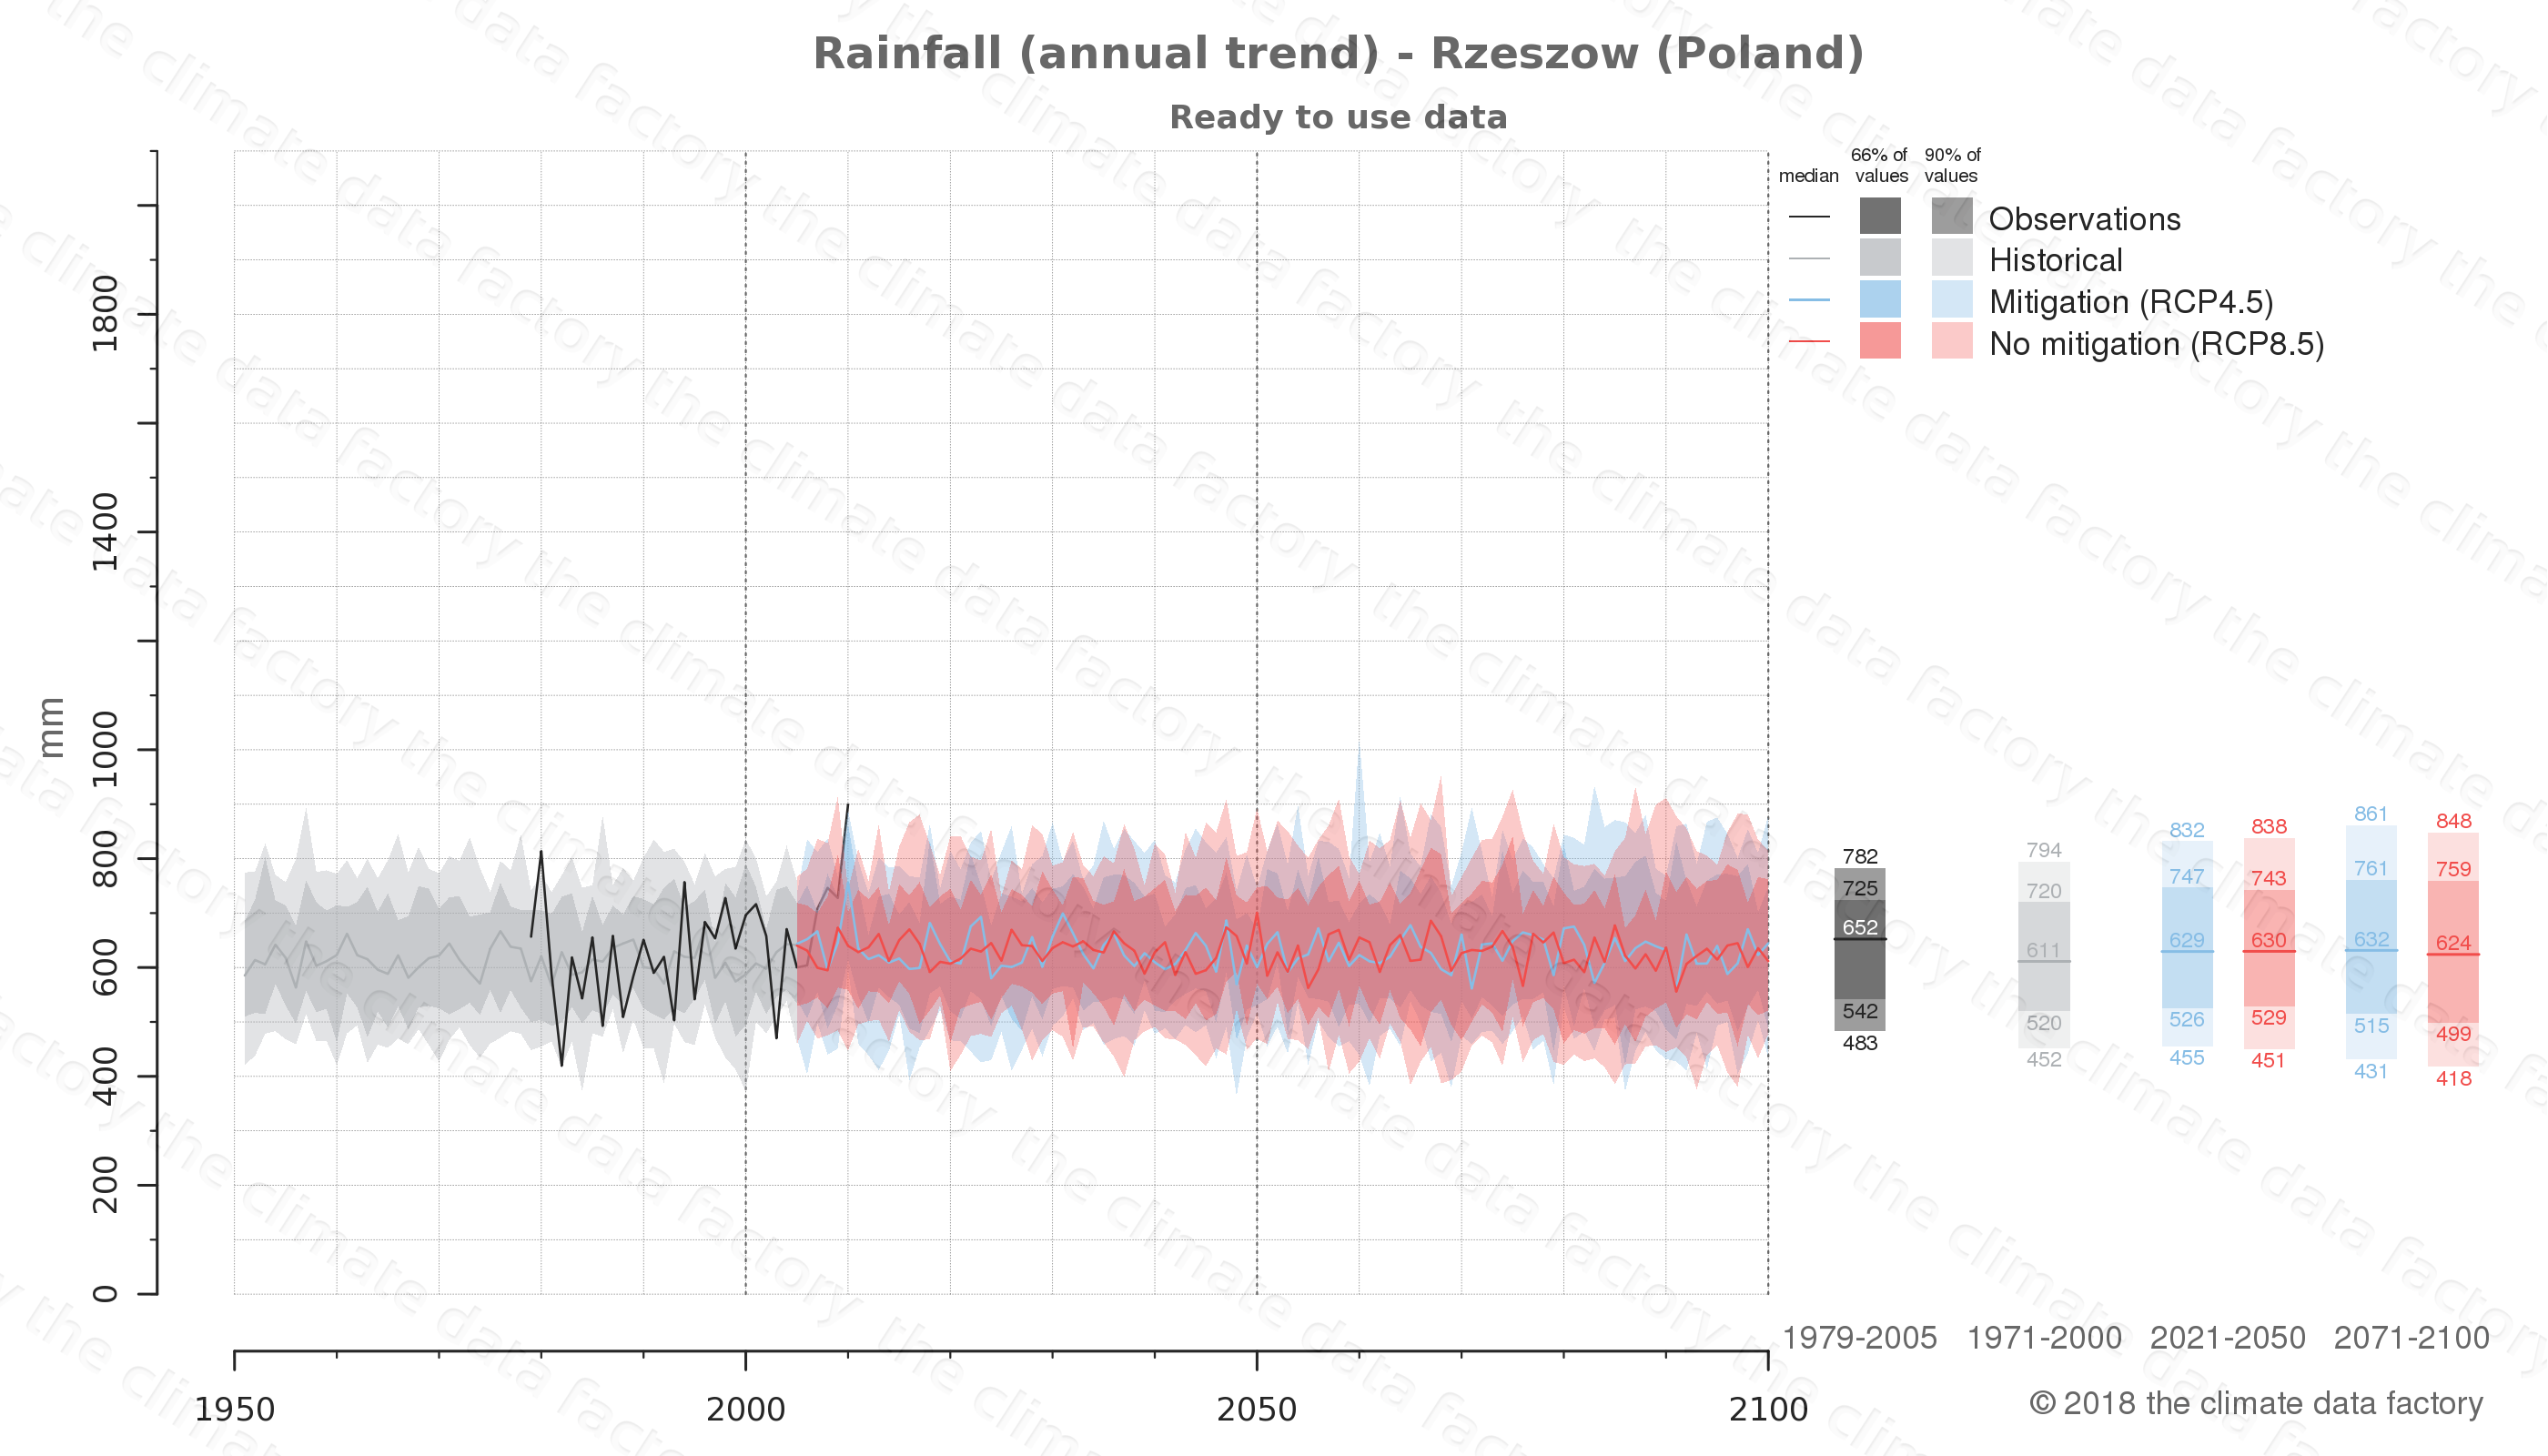 climate change data policy adaptation climate graph city data rainfall rzeszow poland